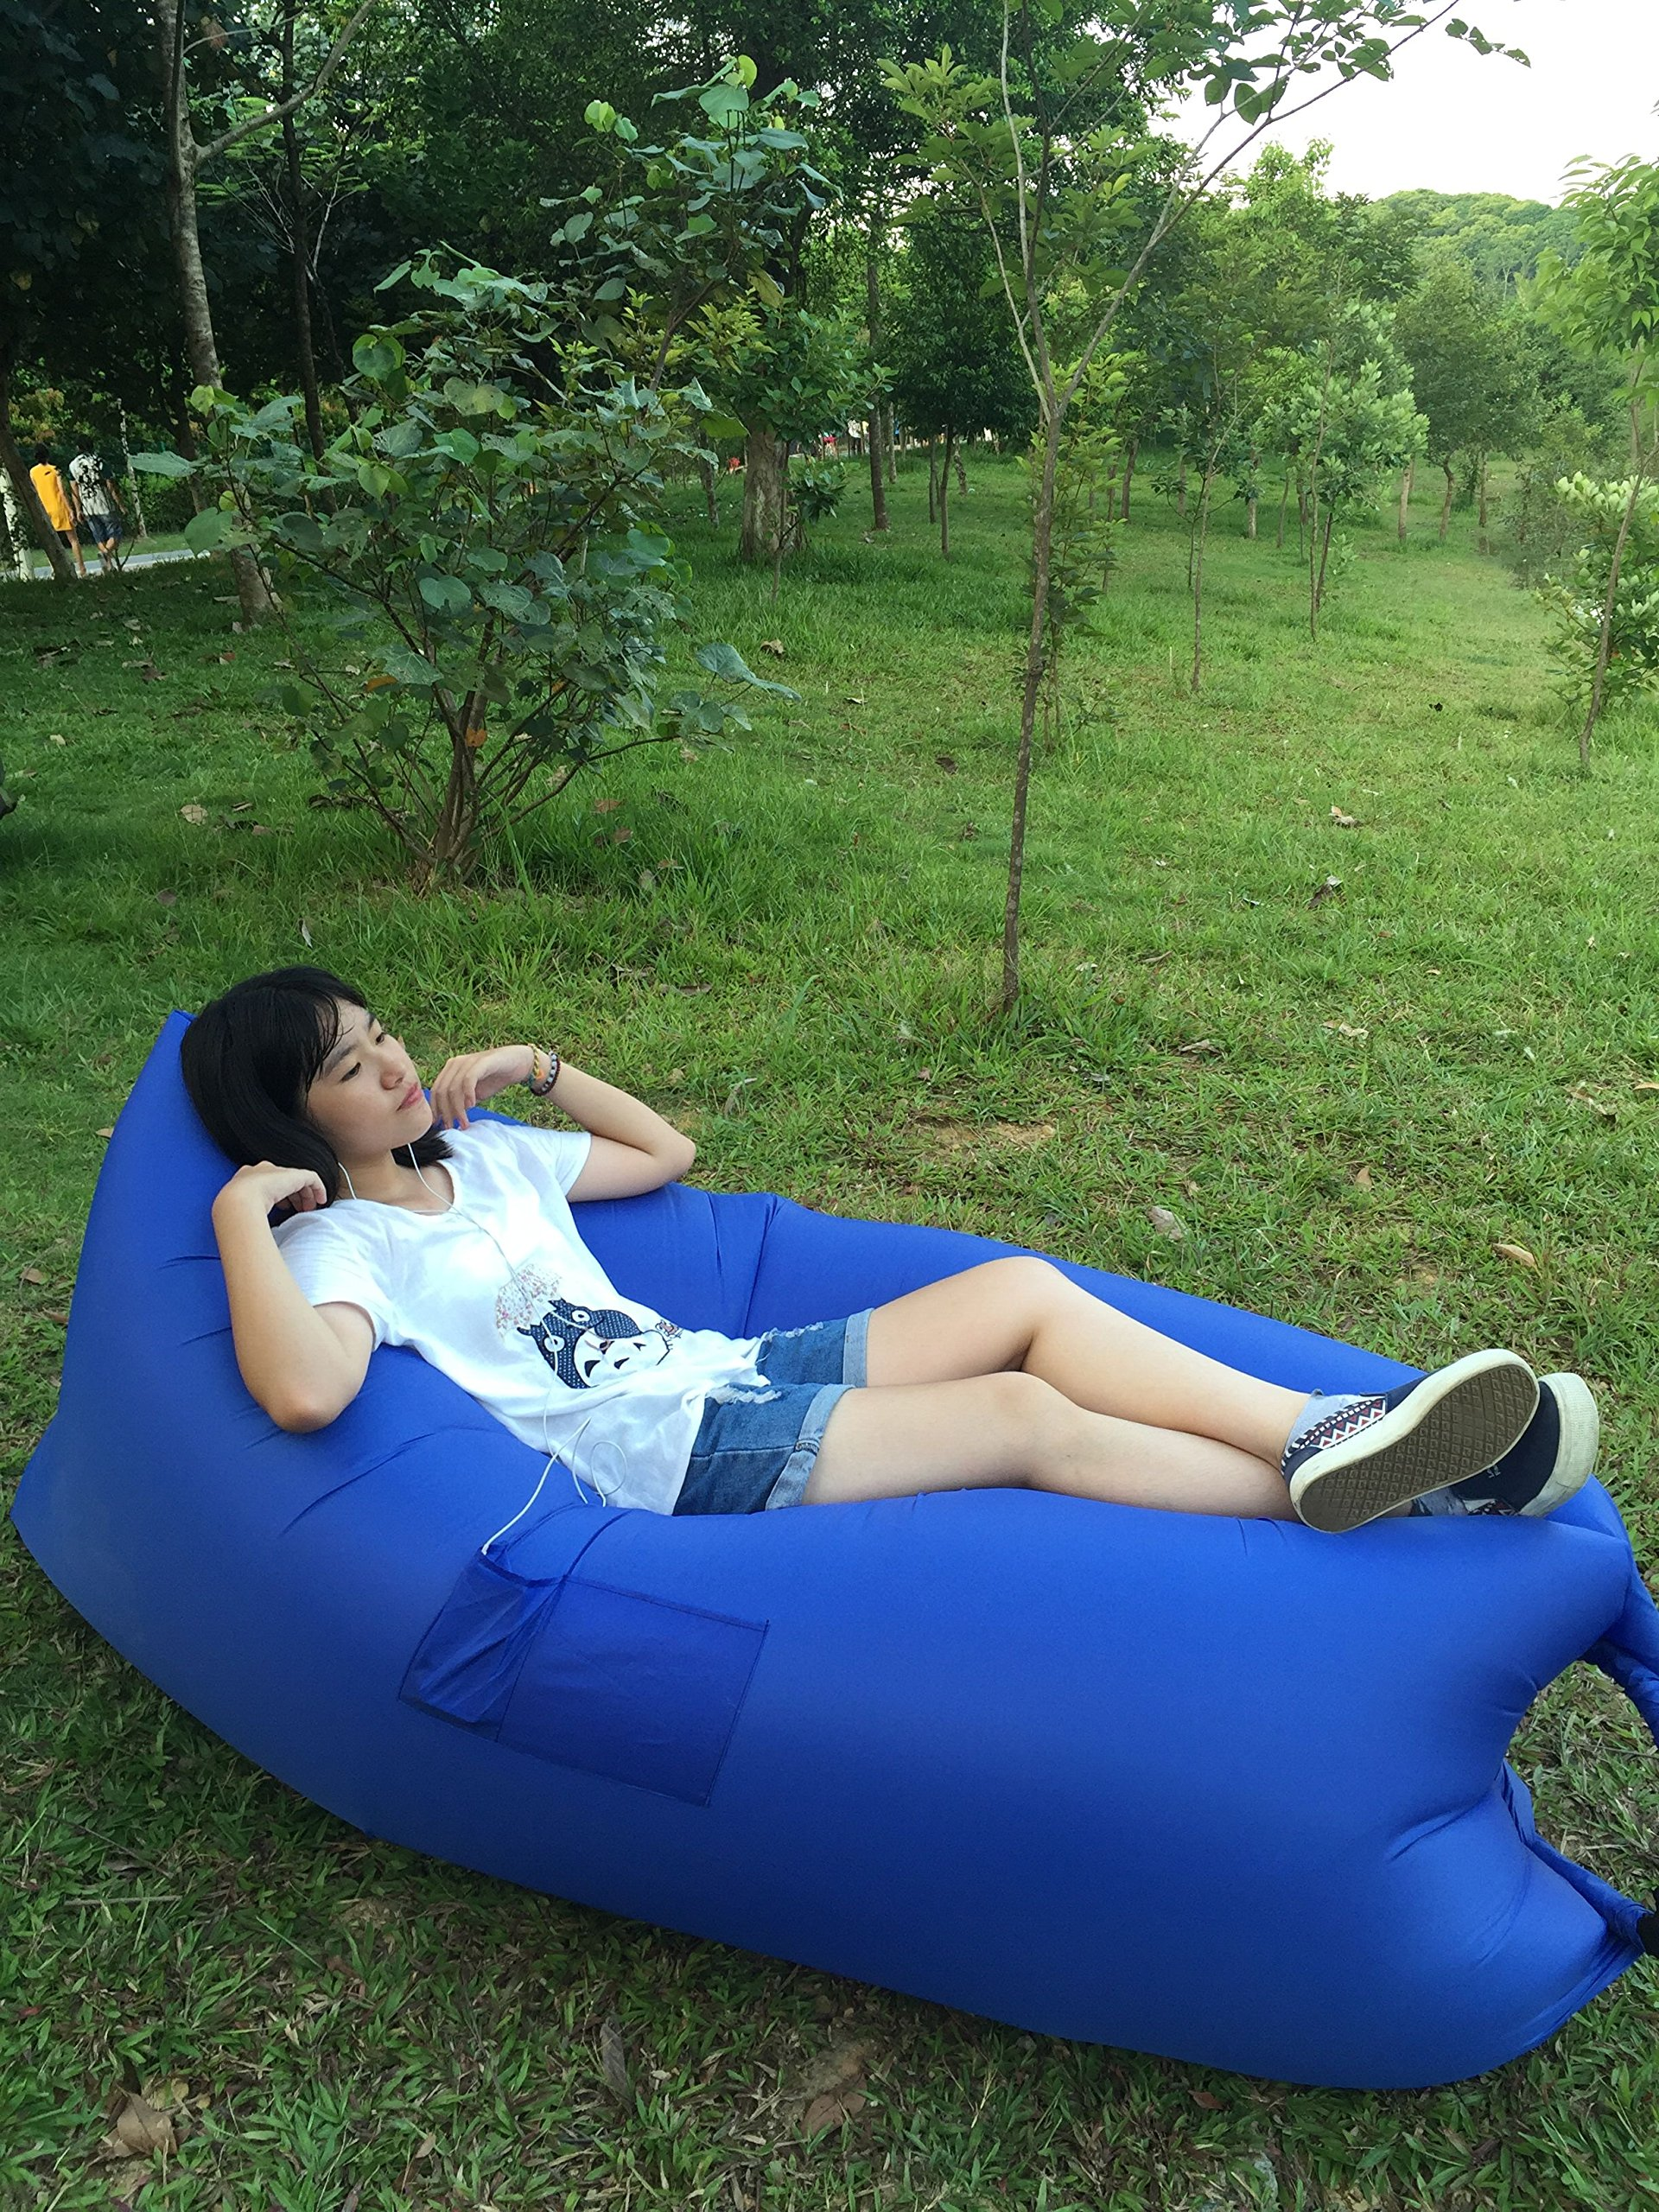 hundred electronic inflatable lounger air sofa outdoor or indoor